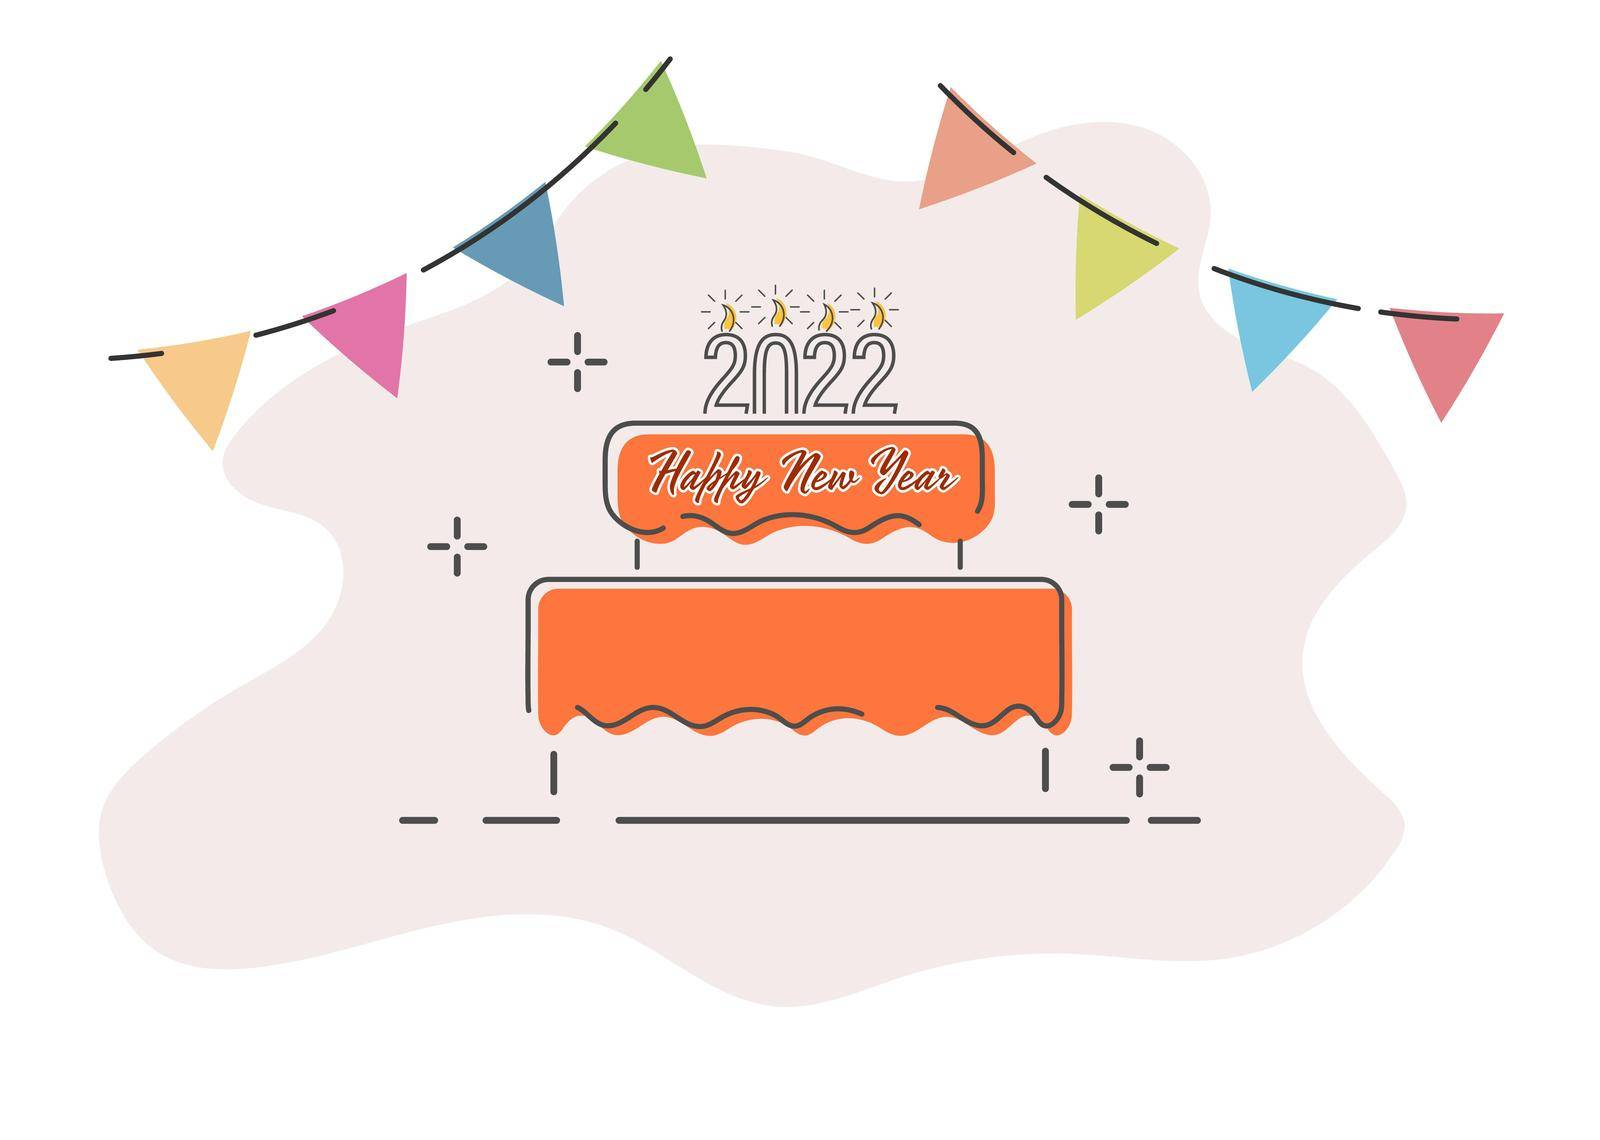 A festive cake with candles 2022 and a congratulatory inscription. Merry Christmas and Happy New Year. Vector illustration. by Grommik